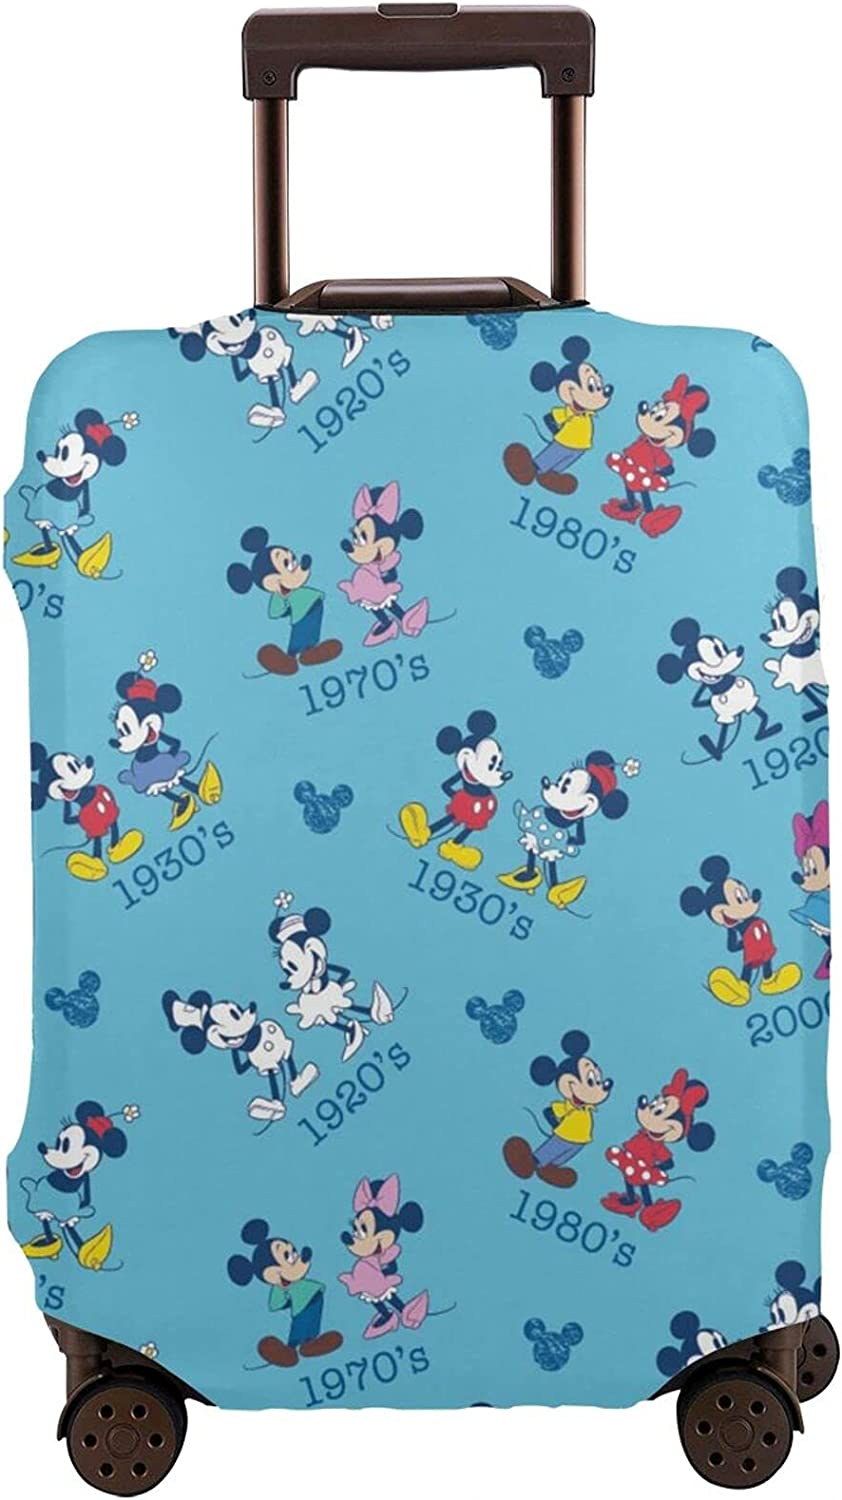 Travel Manufacturer regenerated product Max 56% OFF Luggage Cover Mickey Mouse cute Suitcase Protective Funny